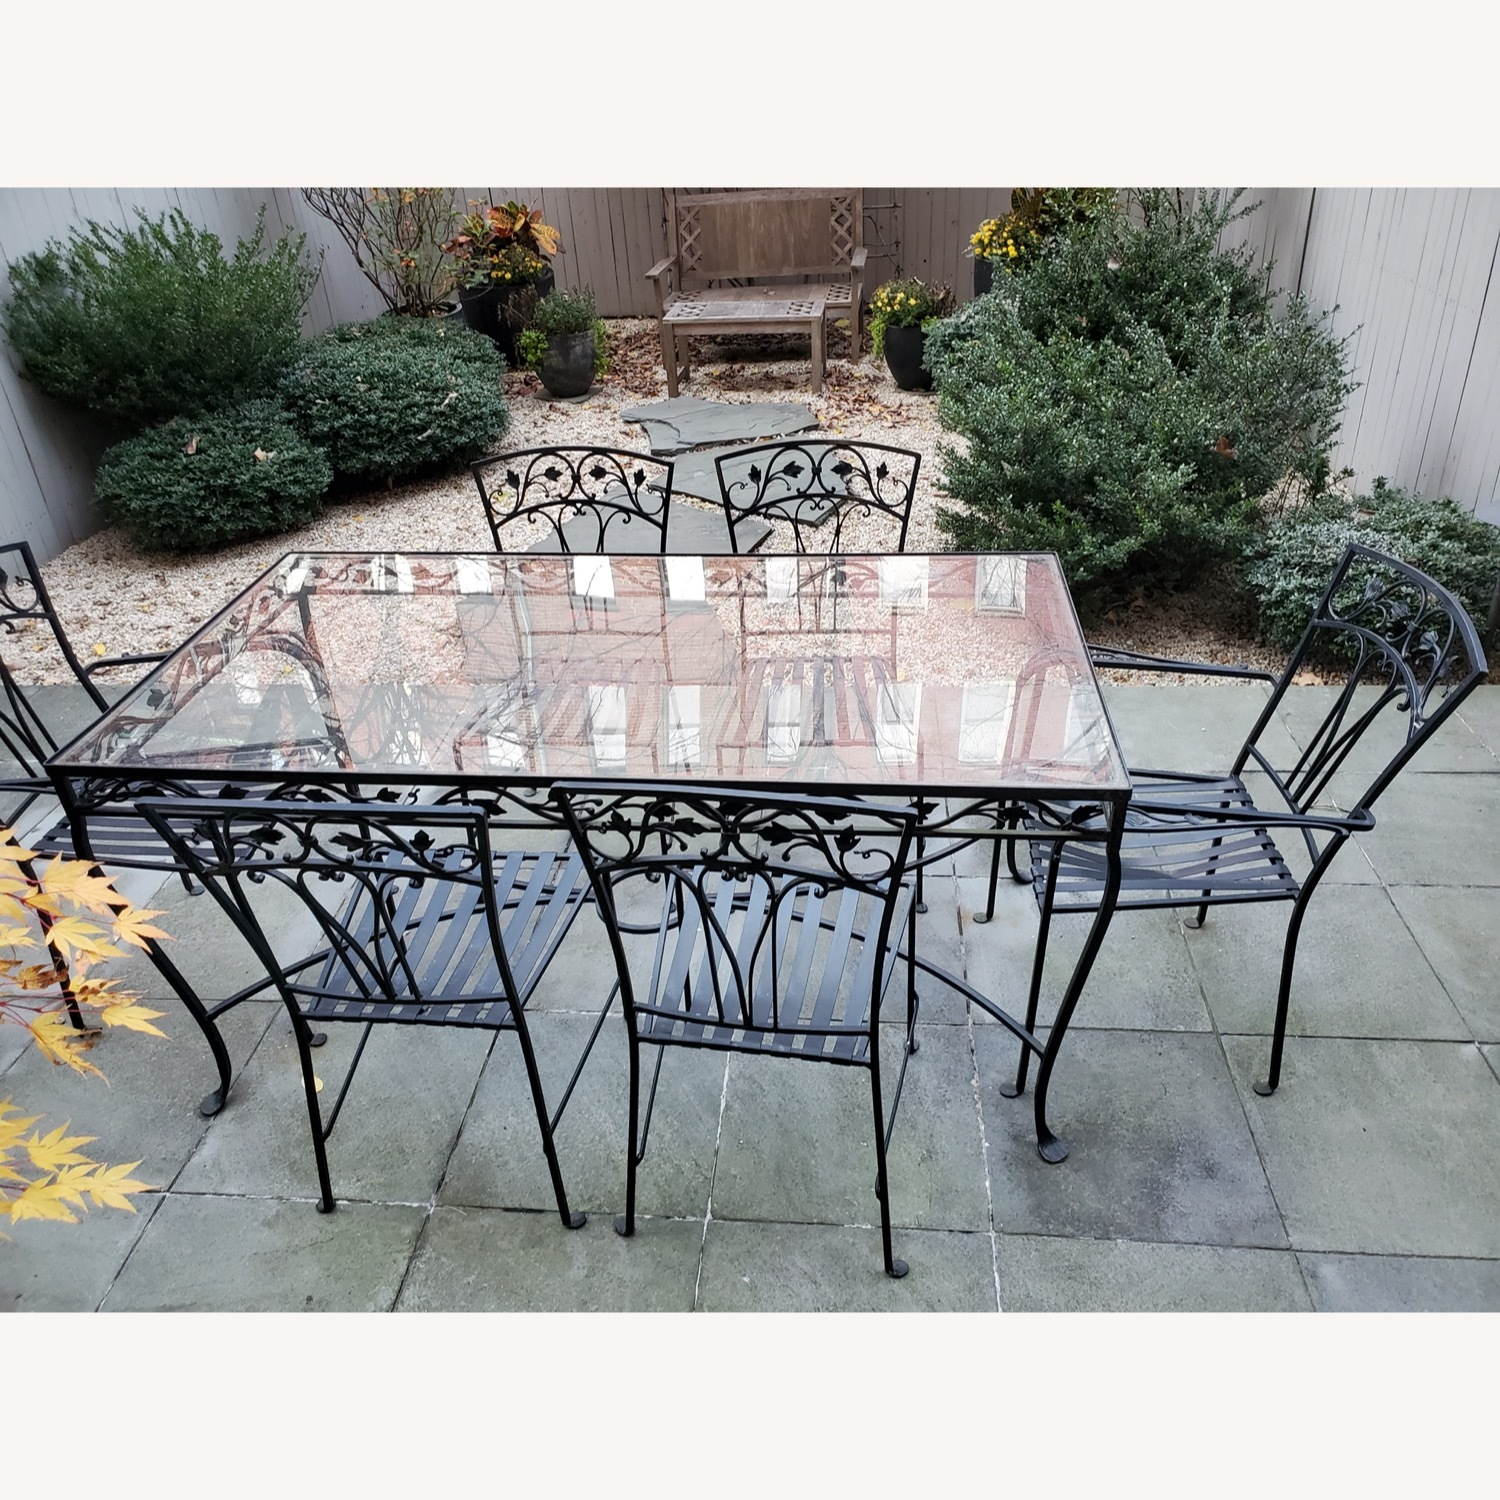 1940's VINTAGE OUTDOOR WROUGHT IRON TABLE/CHAIRS - image-8